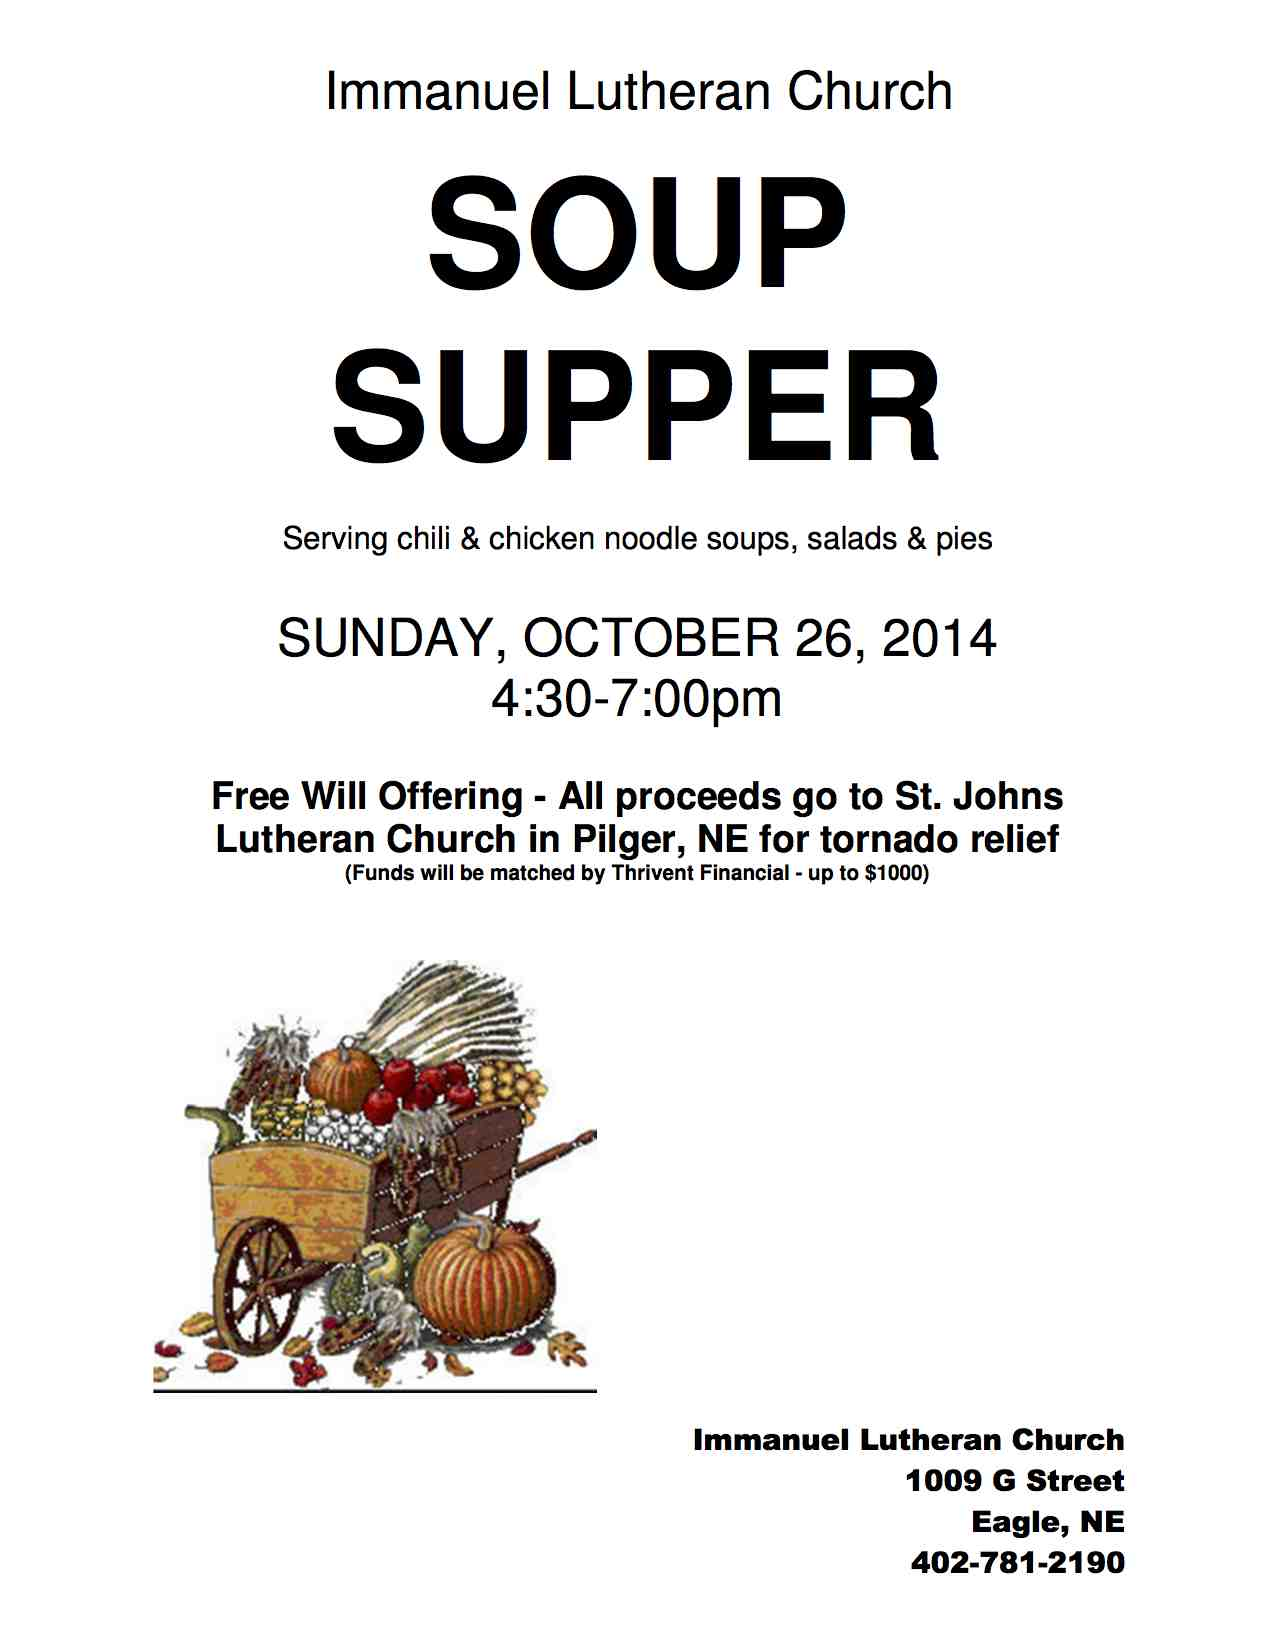 Soup Supper Flyer 2014